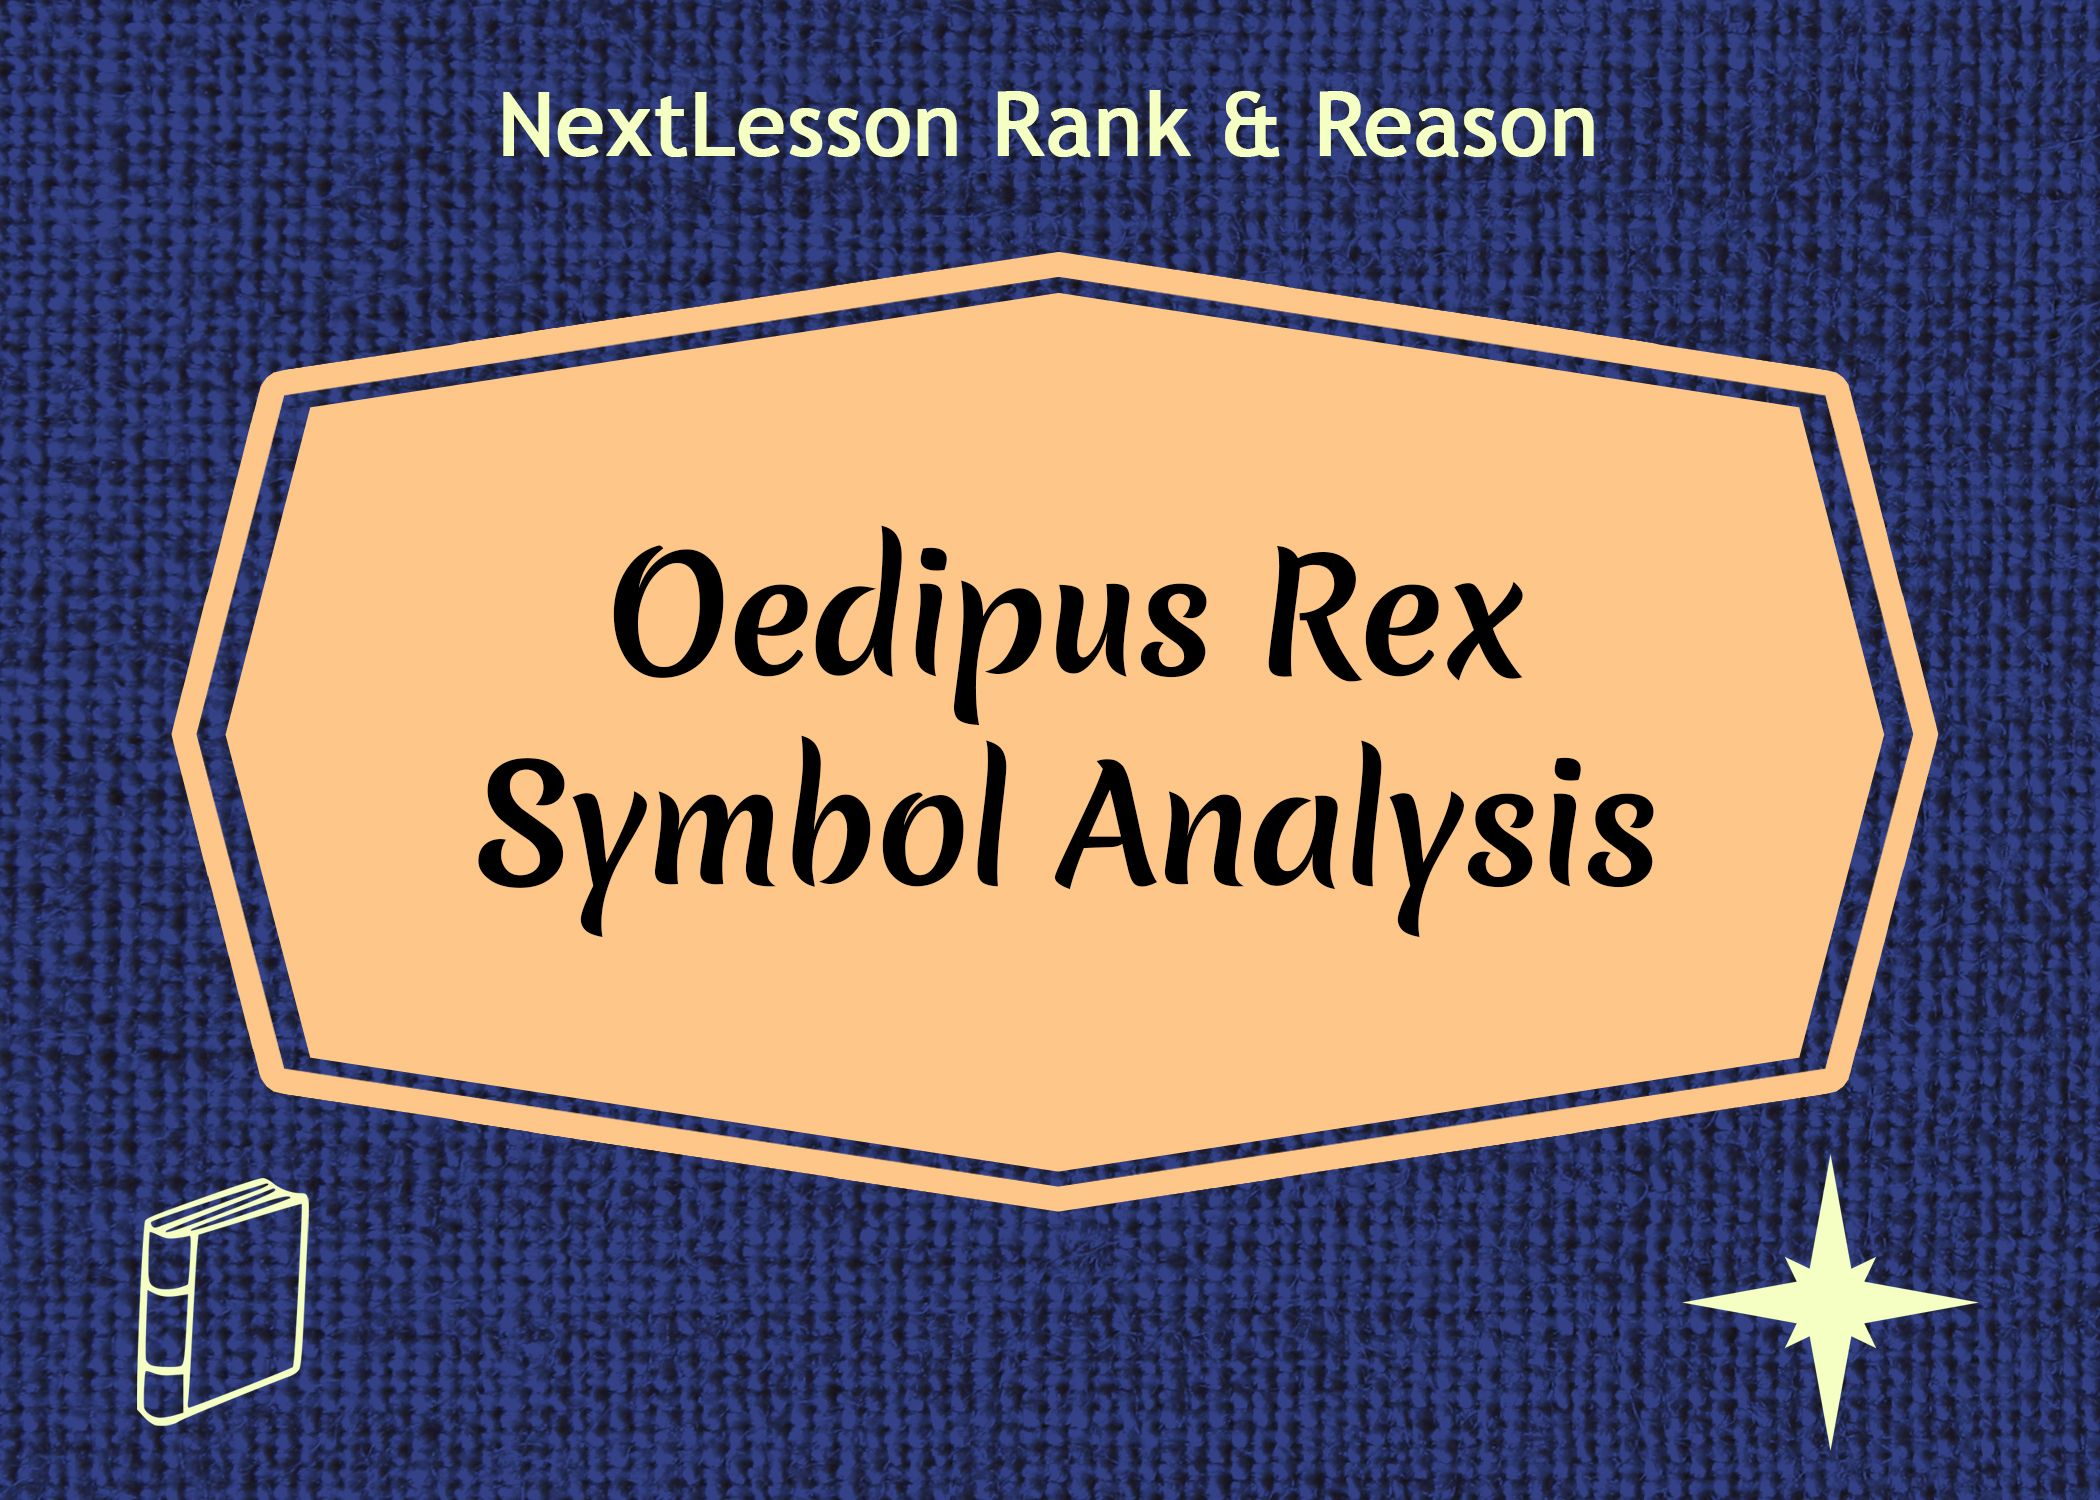 lecture on sophocles oedipus the king literature analyze sophocles use of symbolism in oedipus rex symbol analysis